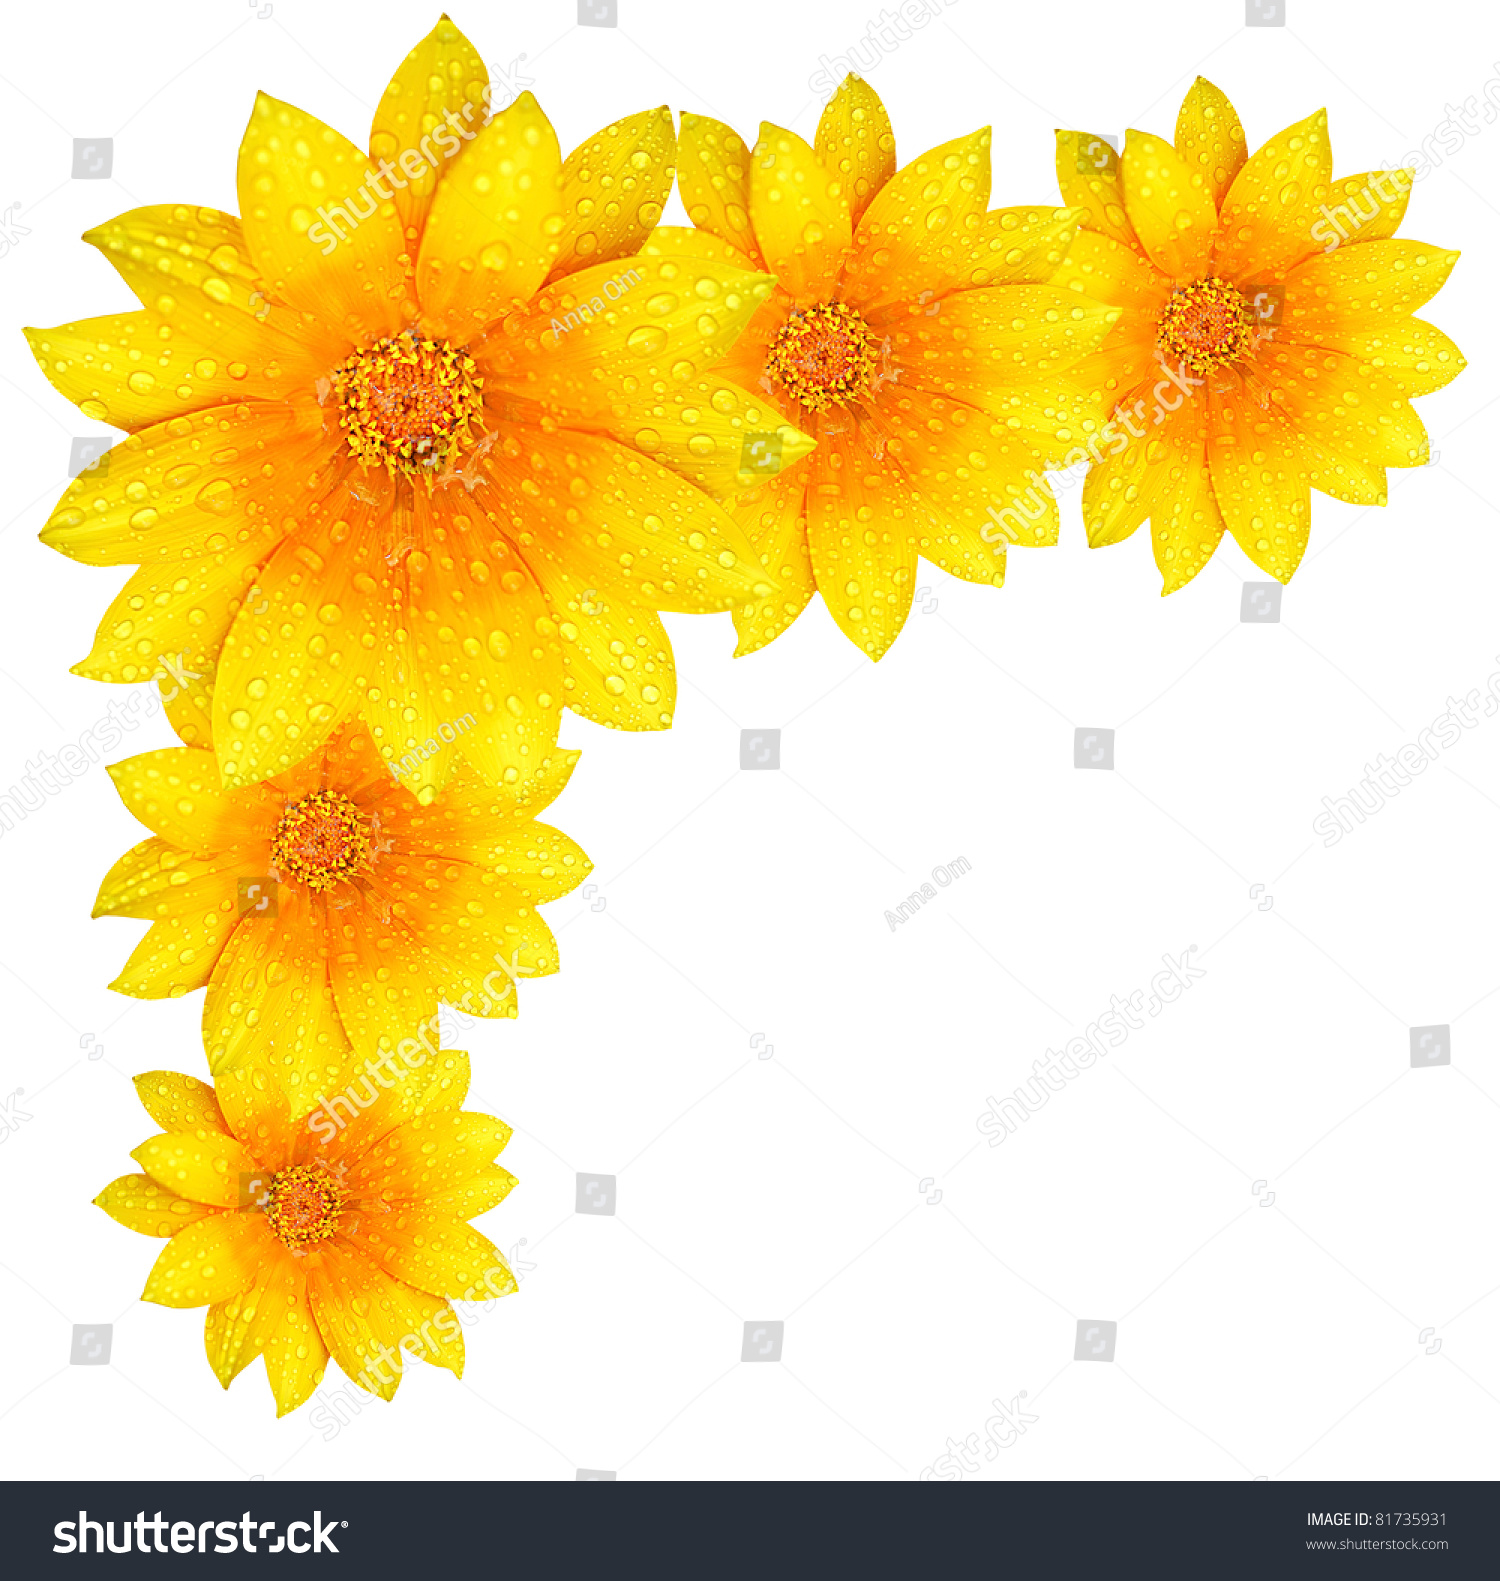 Royalty Free Fresh Yellow Flower Border Isolated 81735931 Stock